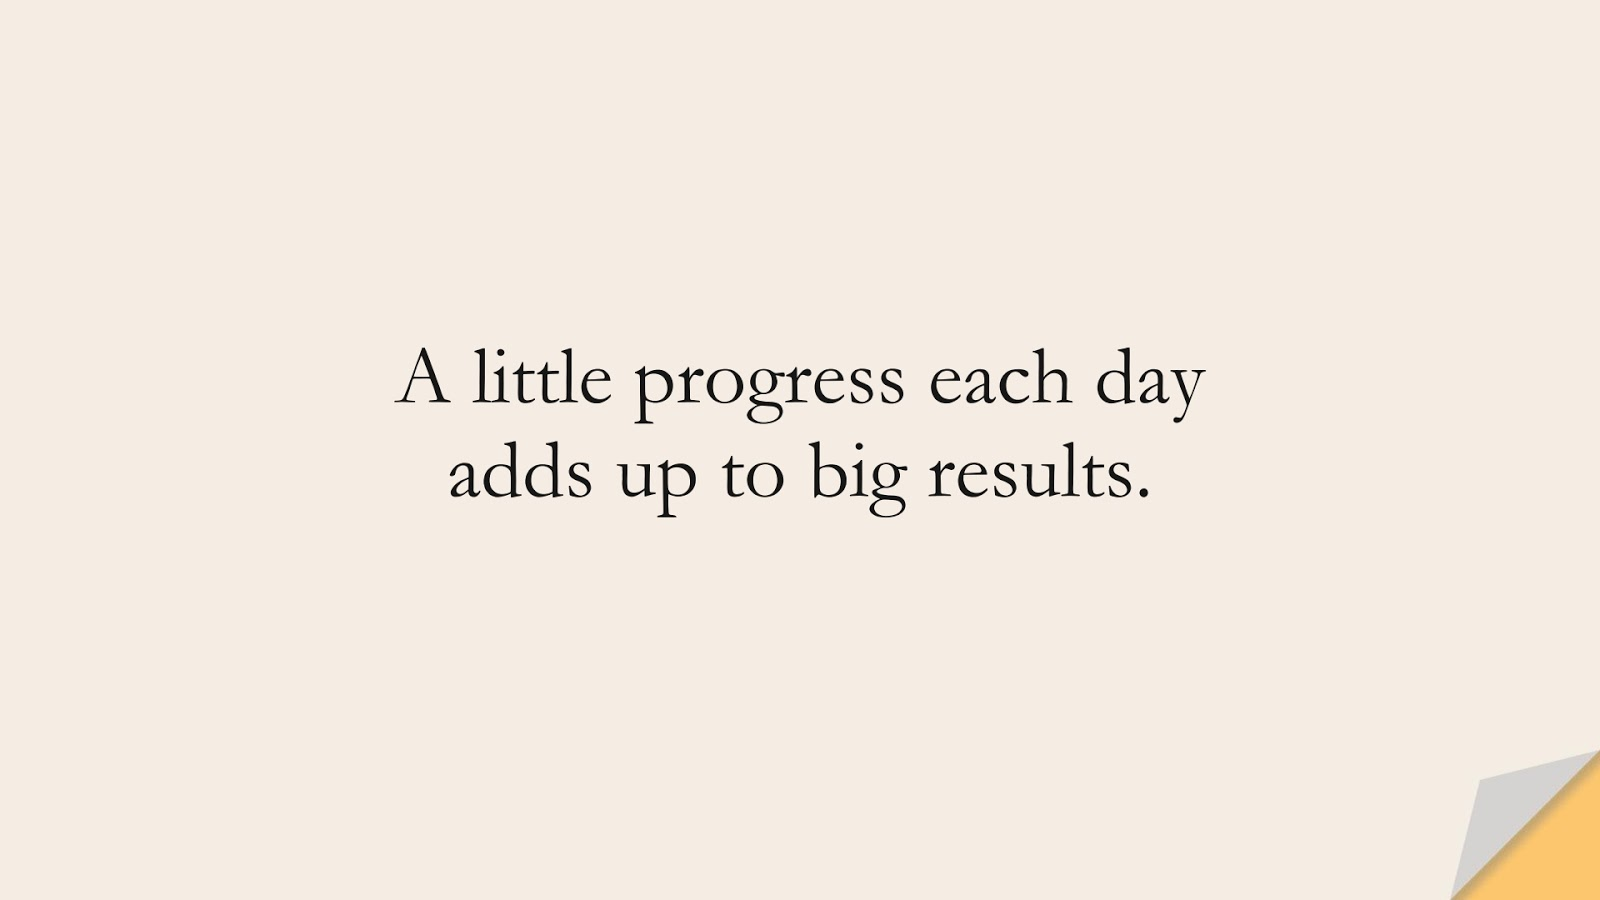 A little progress each day adds up to big results.FALSE